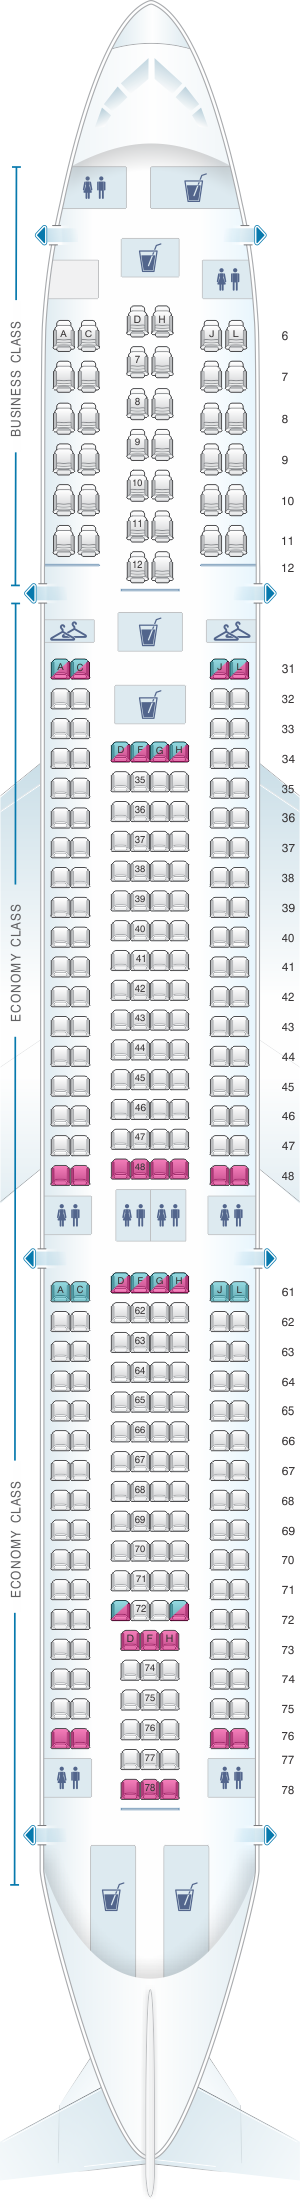 Seat map for China Eastern Airlines Airbus A330 300 300PAX